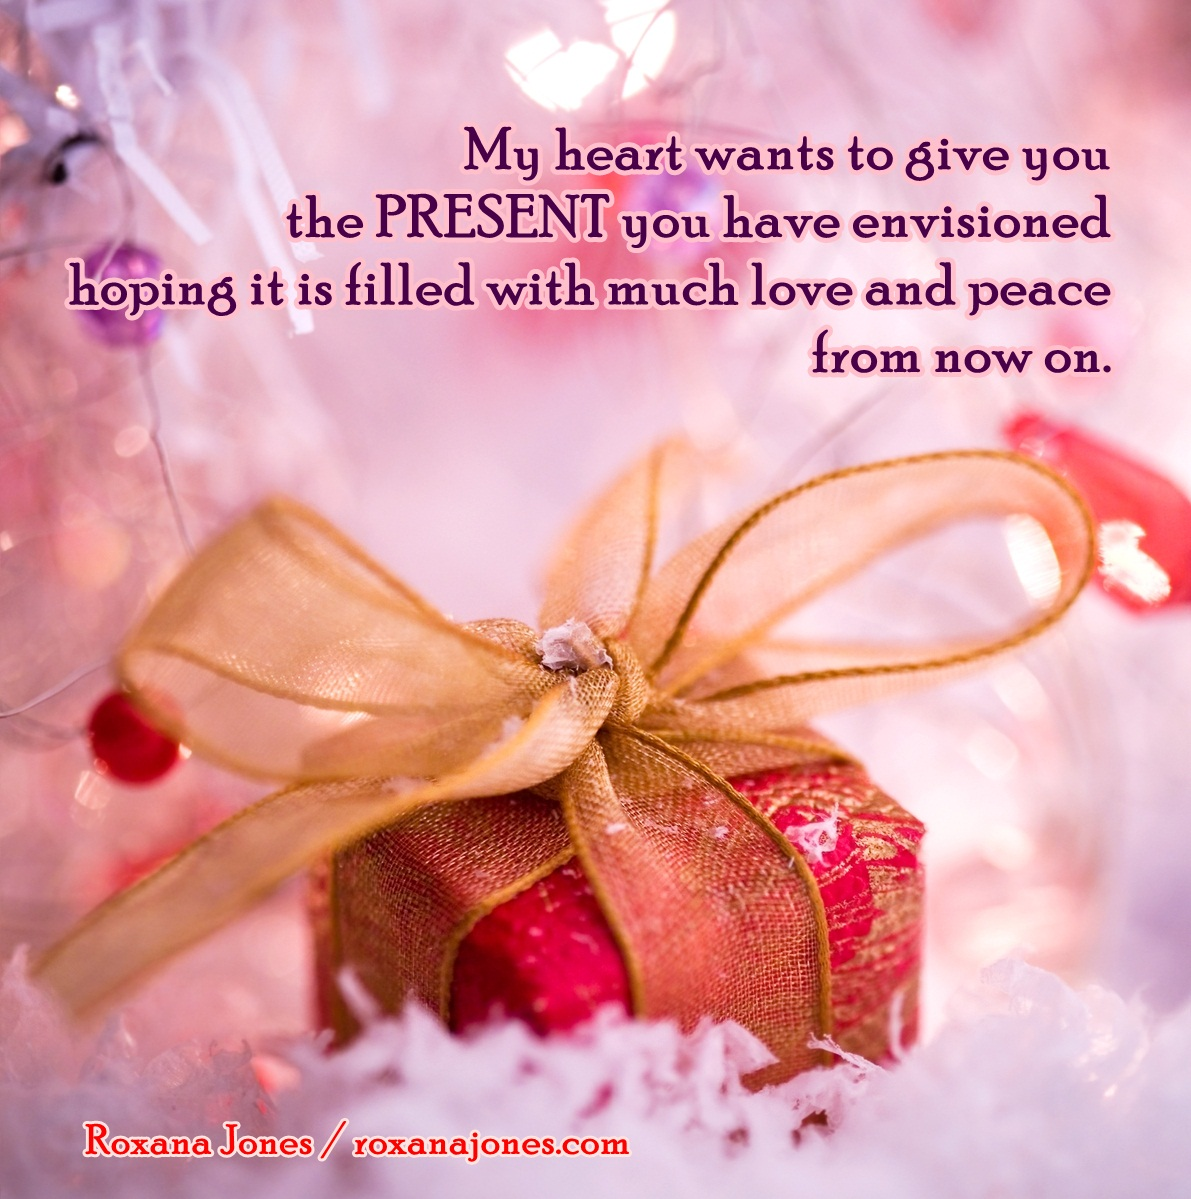 Nice Clarity Quote by Roxana Jones ~ My heart wants to  give you the present you have envisioned hoping it is filled with much love and peace from now on.